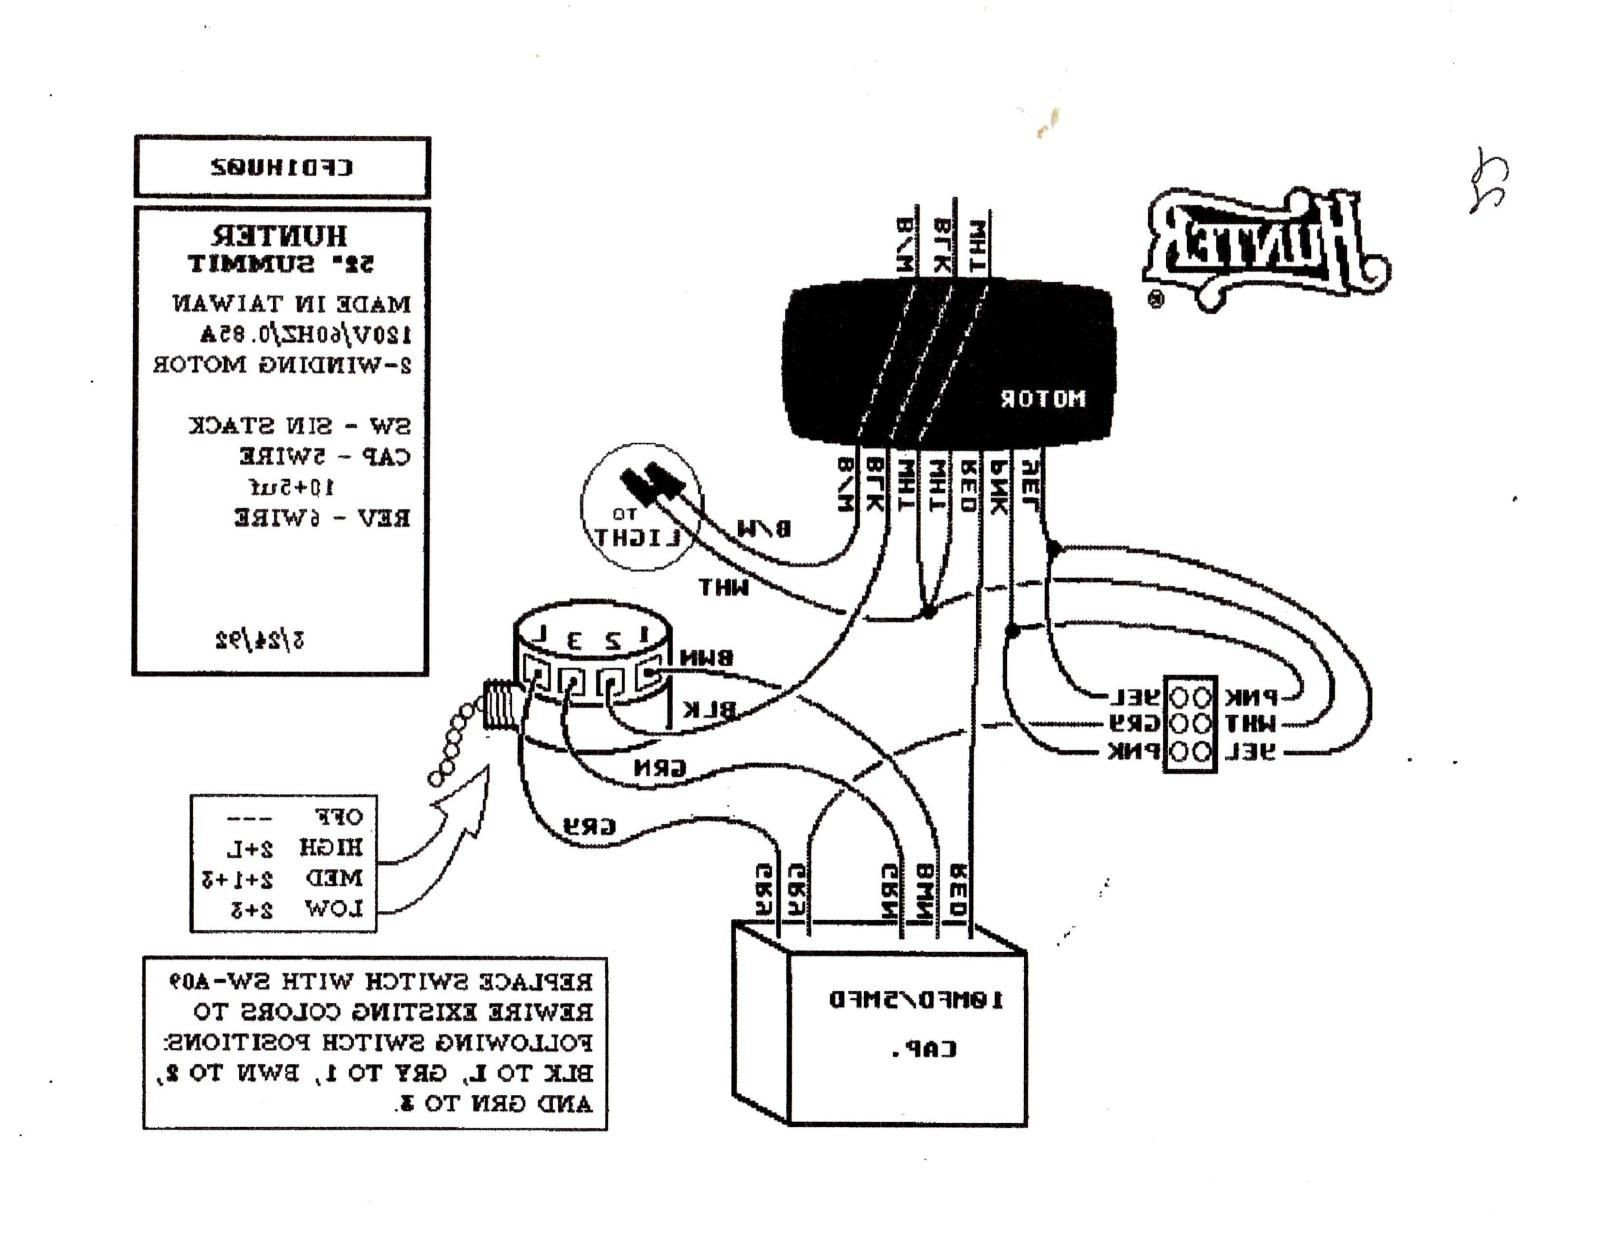 Hampton Bay 3 Speed Ceiling Fan Switch Wiring Diagram Download Manual Guide